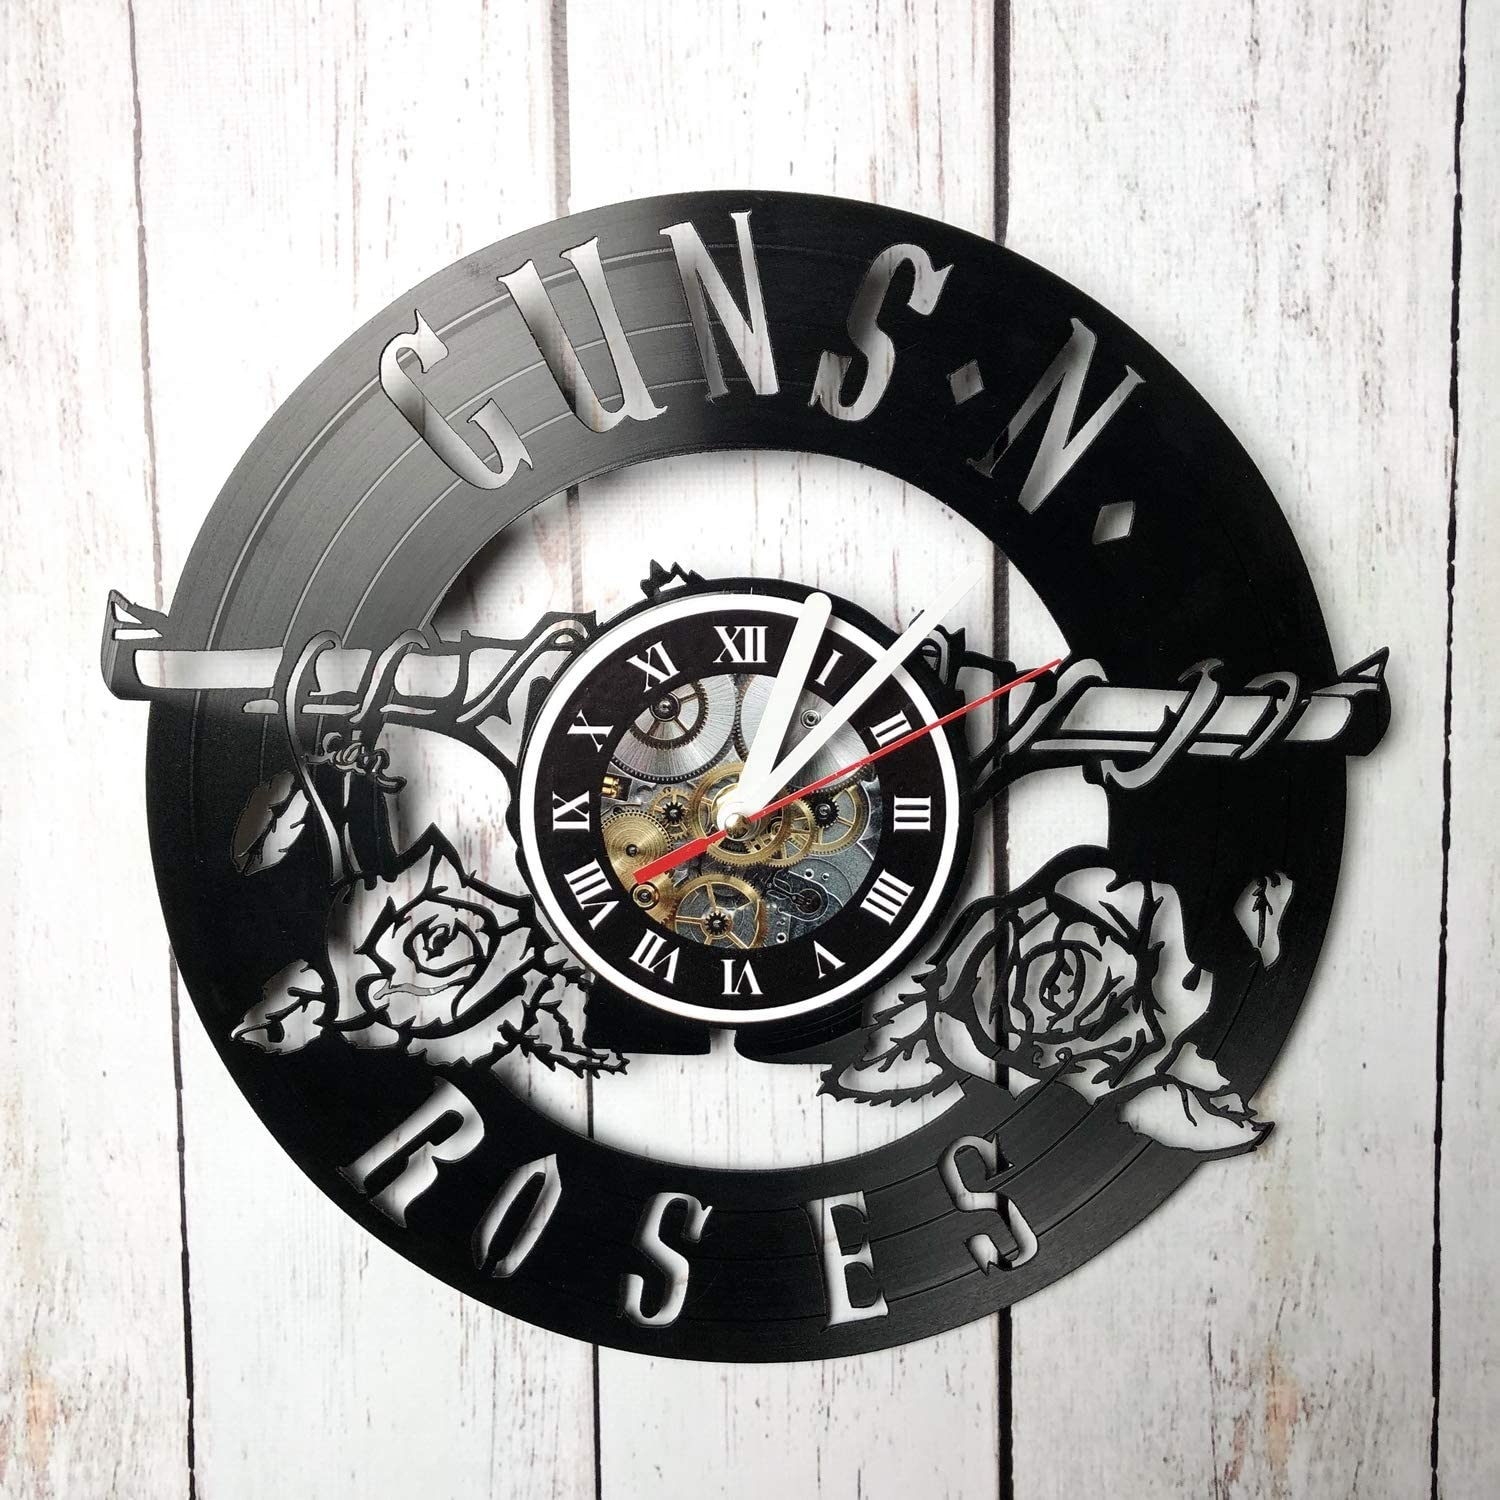 Iskra Shop Guns'n'Roses Vinyl Wall Clock - Get Unique Gifts Presents for Birthday, Christmas, Ideas for Boys, Girls, Men, Women, Adults, him and her - Sport Unique Art Design